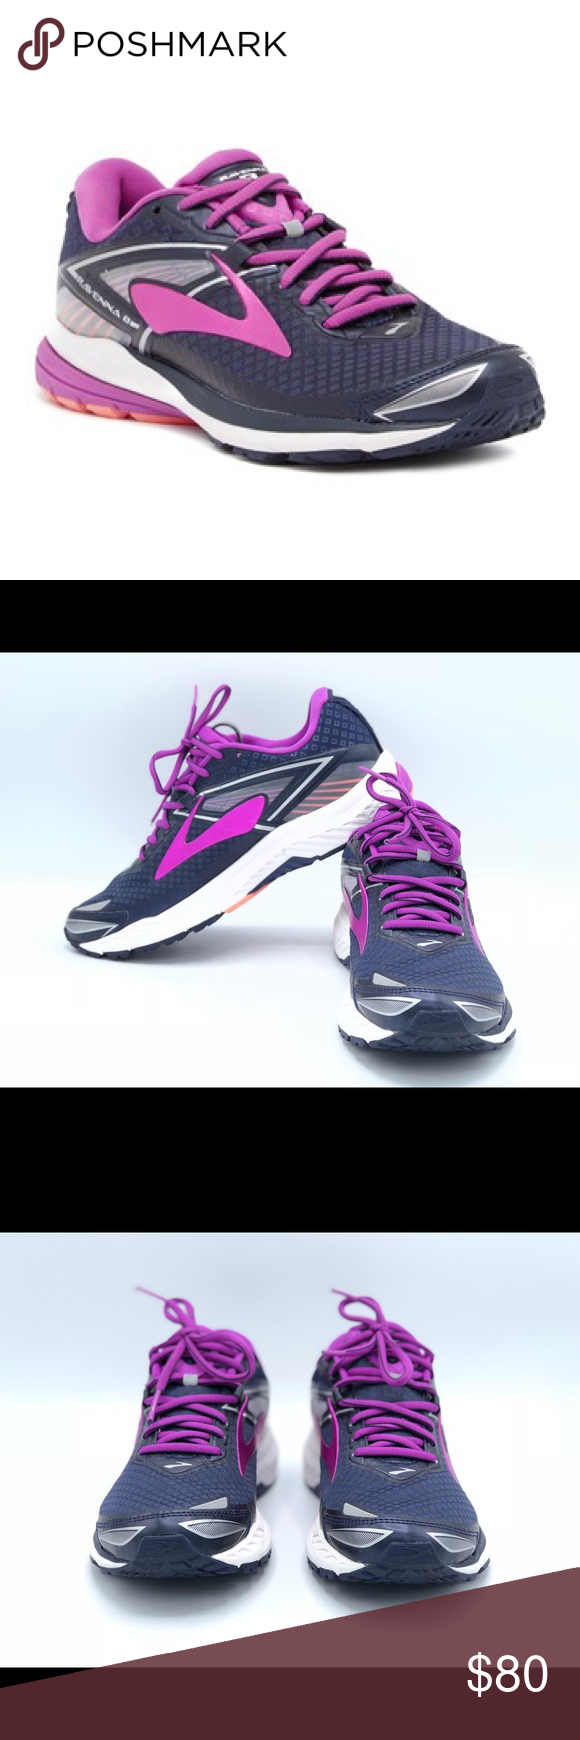 a2bb3bcd291 Brooks Ravenna 8 Road Women s Shoes There are almost new Brooks Ravenna 8  Road Women s Running Shoe. No Box. Style - 1202381B454 Size - 9 (True to  size) ...